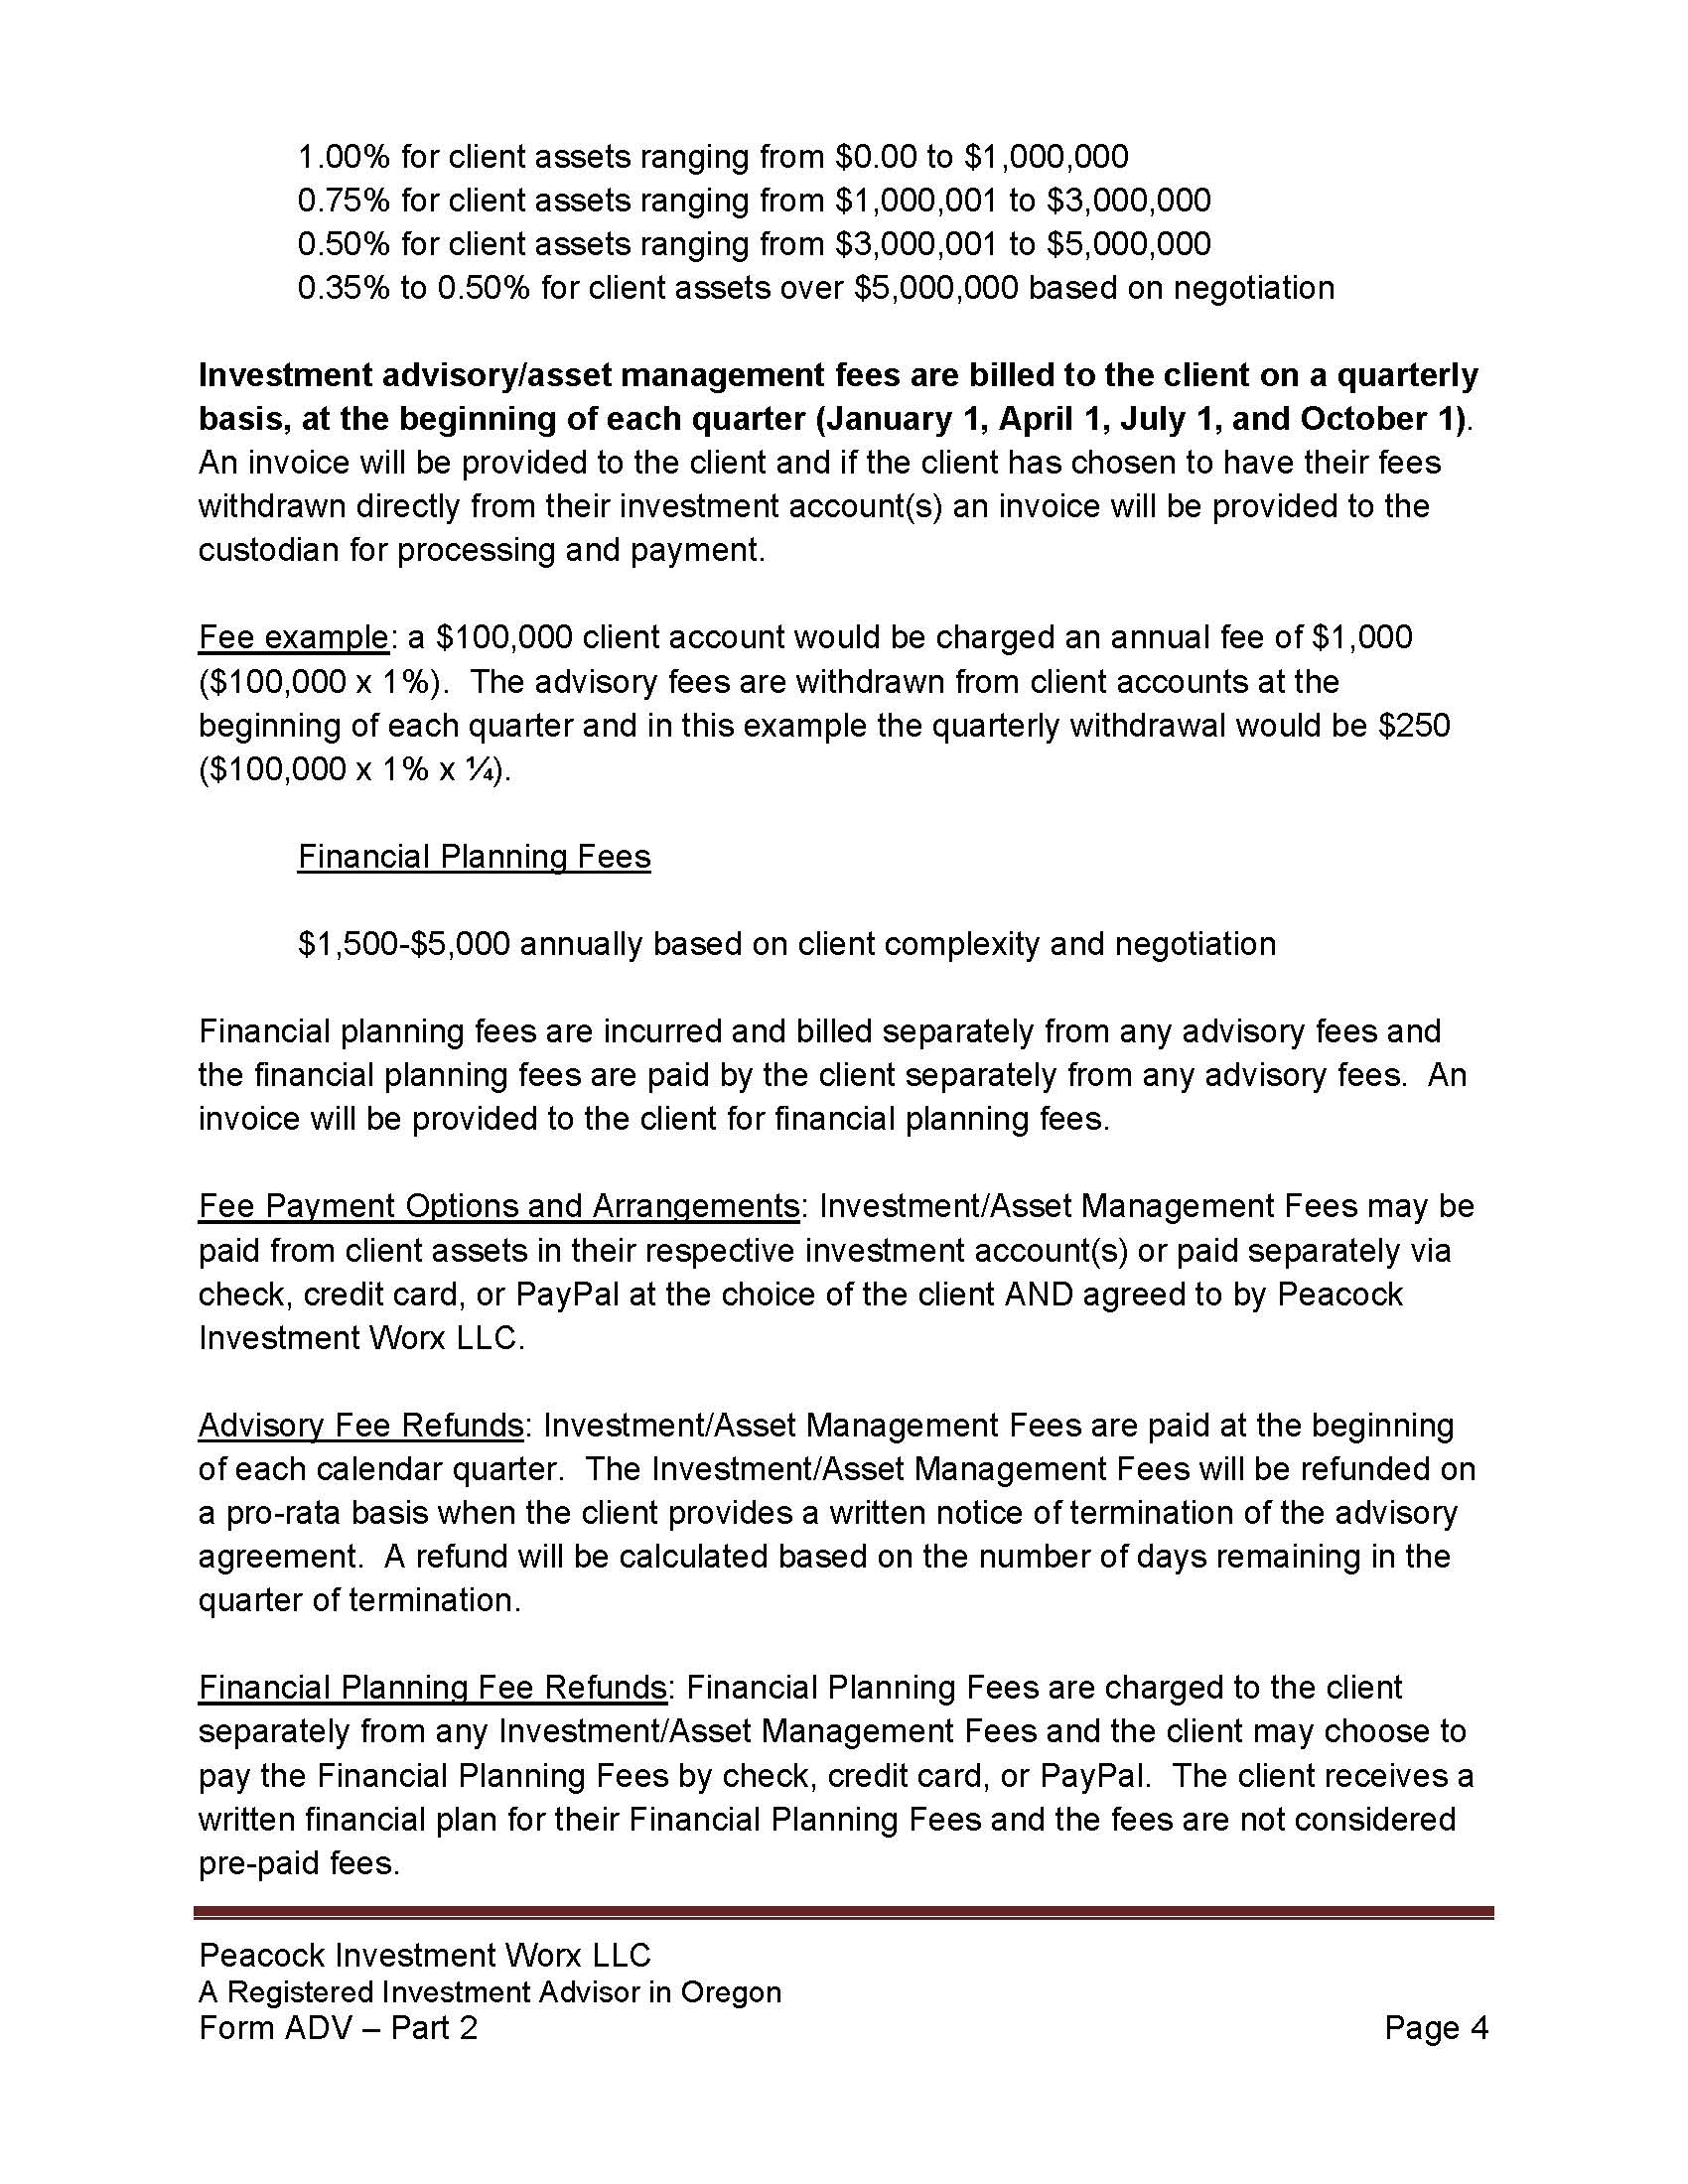 PIW Form ADV Part 2 Firm Brochure With TradePMR FCC Verbiage 6 11